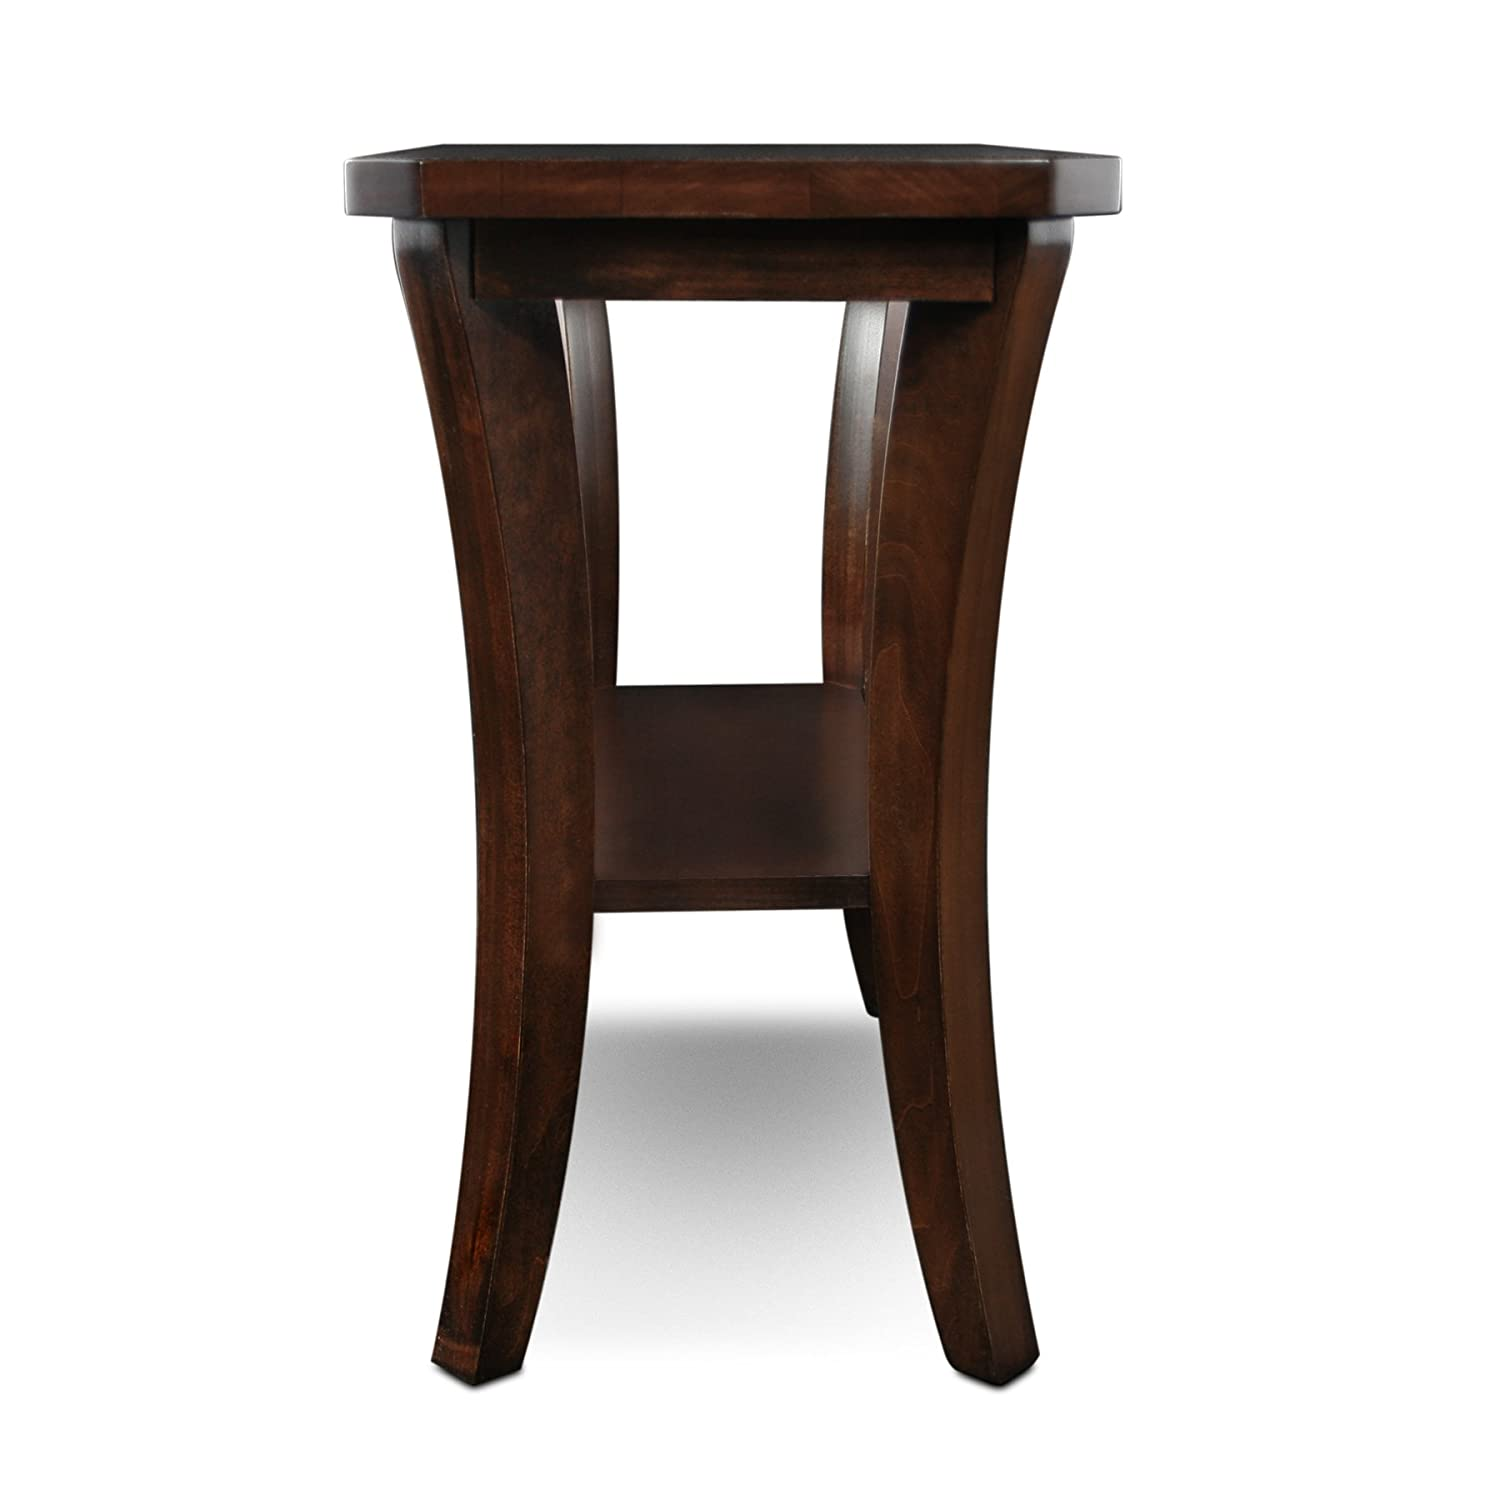 amazoncom leick furniture boa collection solid wood narrow chairside endtable kitchen  dining. amazoncom leick furniture boa collection solid wood narrow